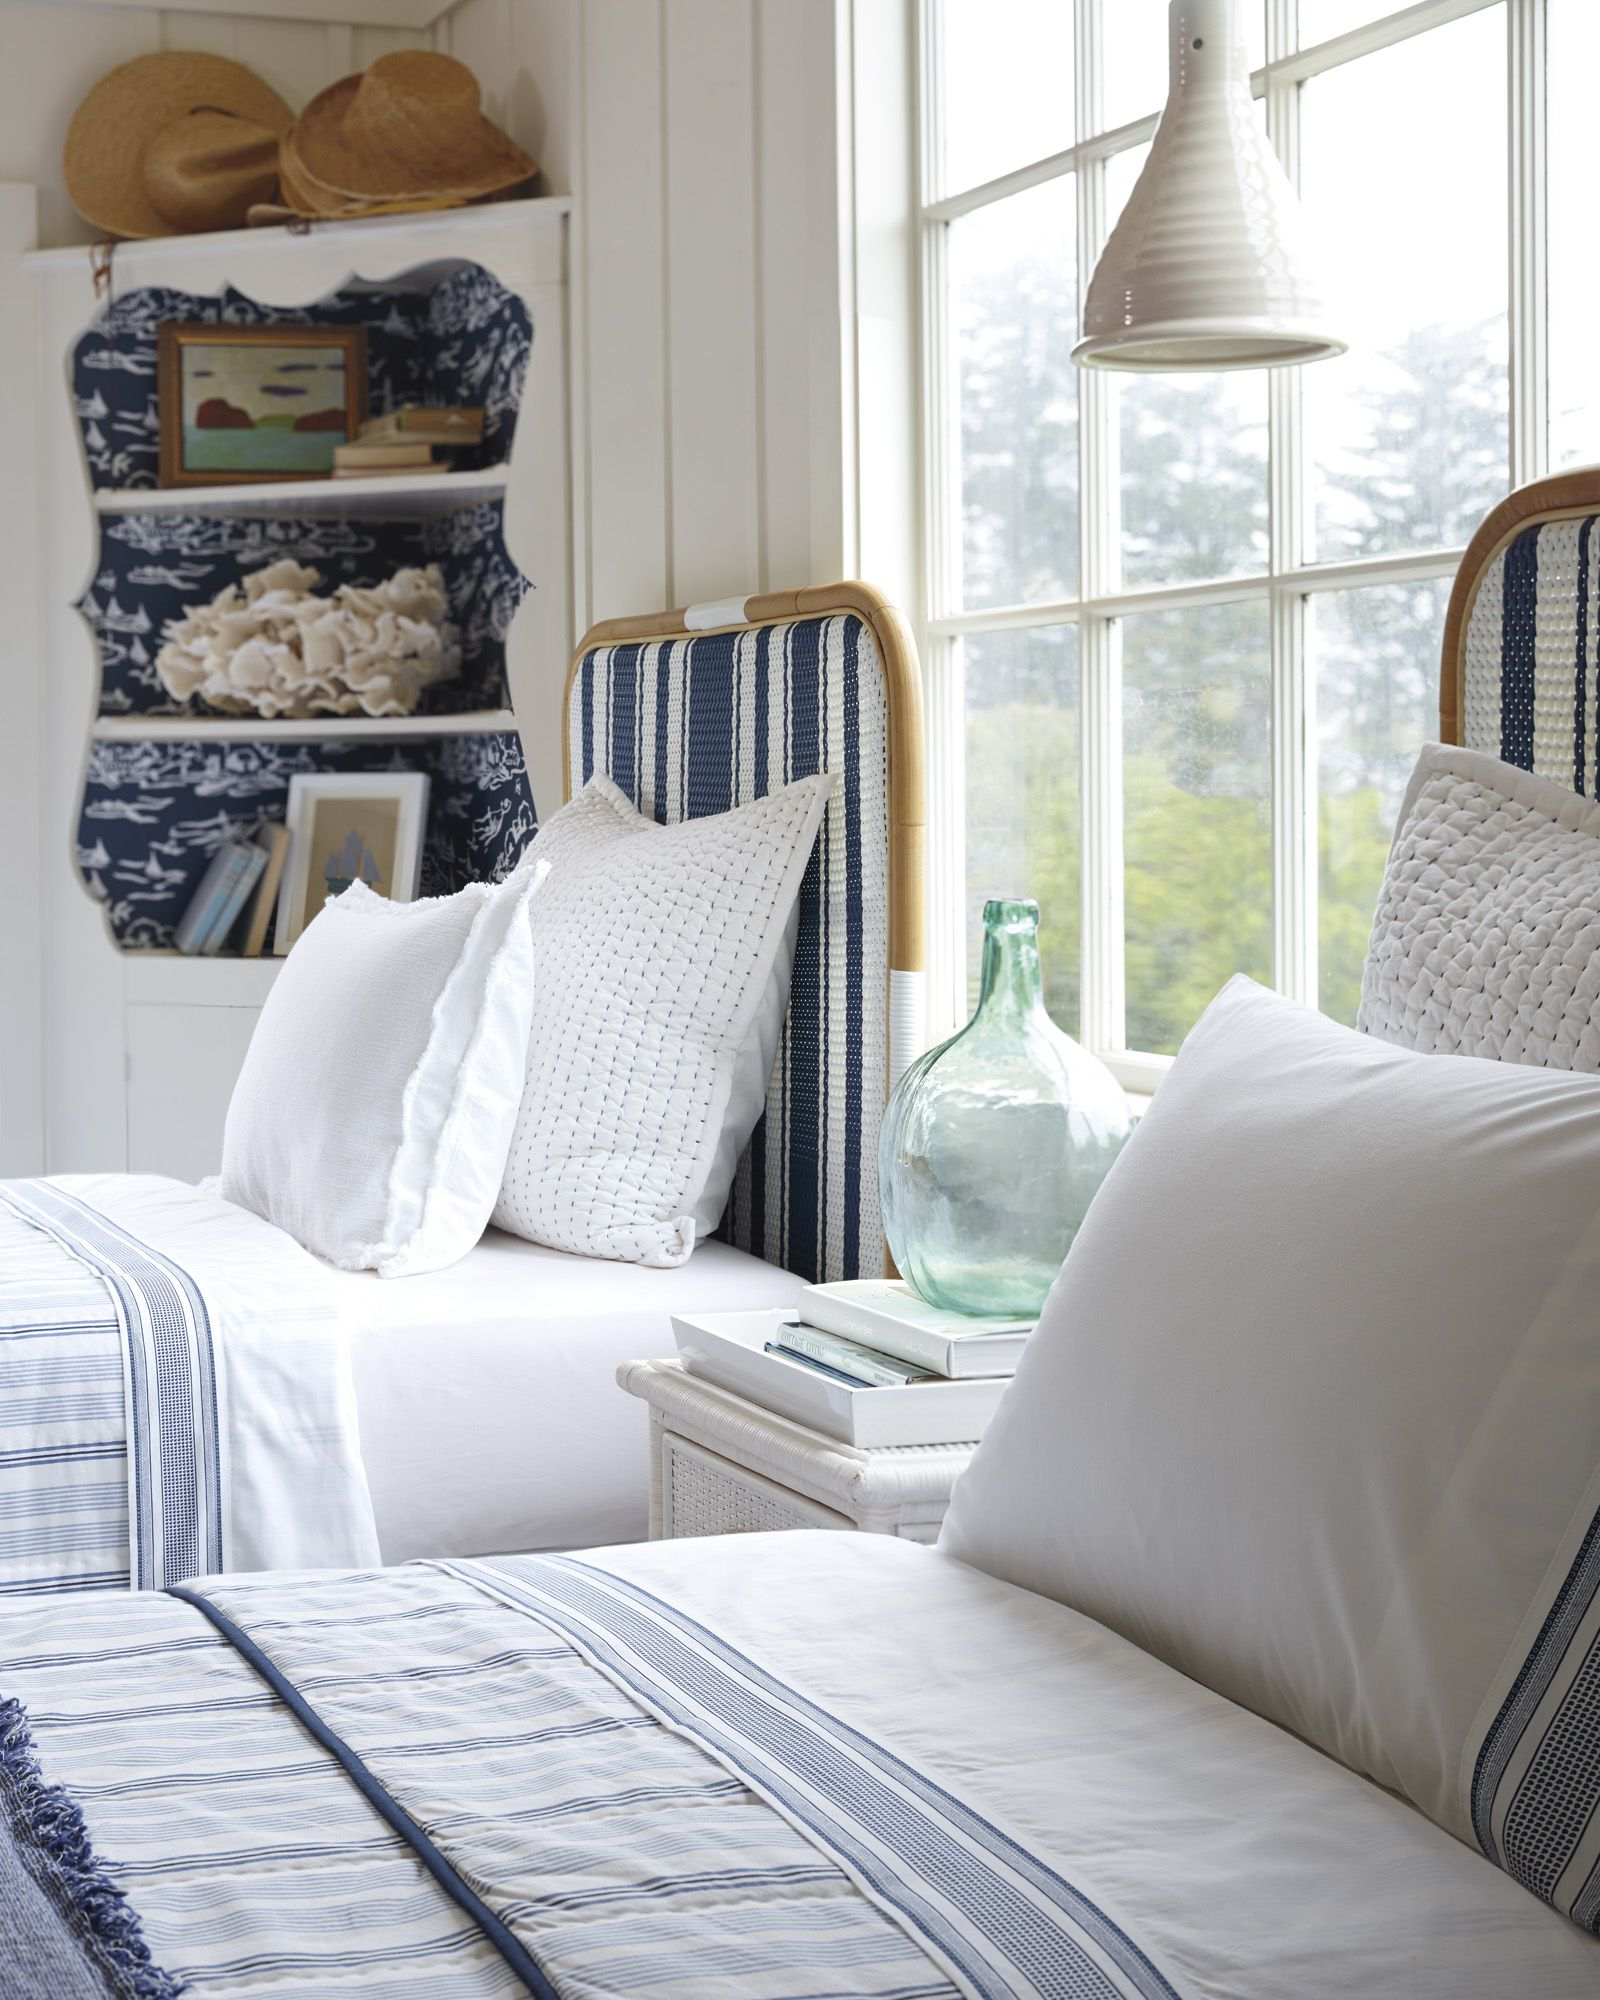 twin bed decked out in navy & white | riviera headboard via serena